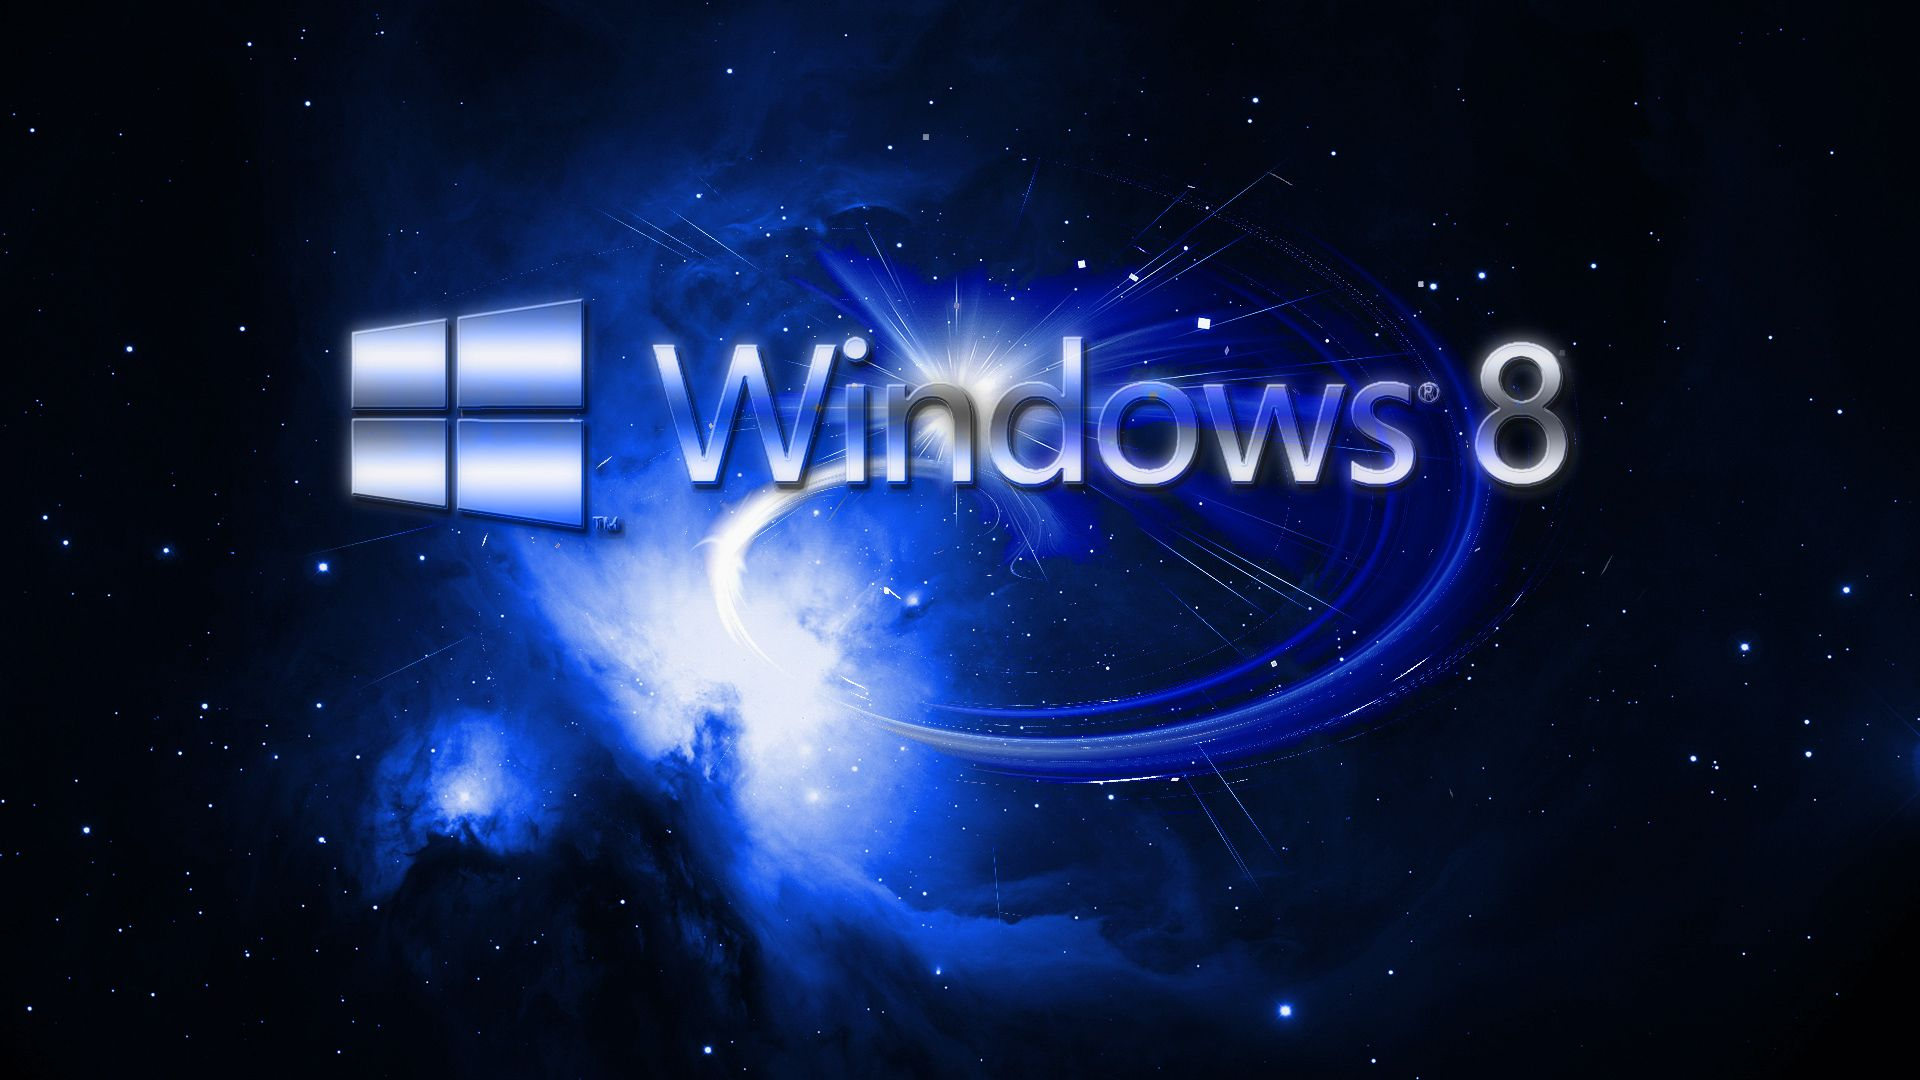 Windows 8 wallpaper full hd design das gef llt for Windows 8 bureaublad